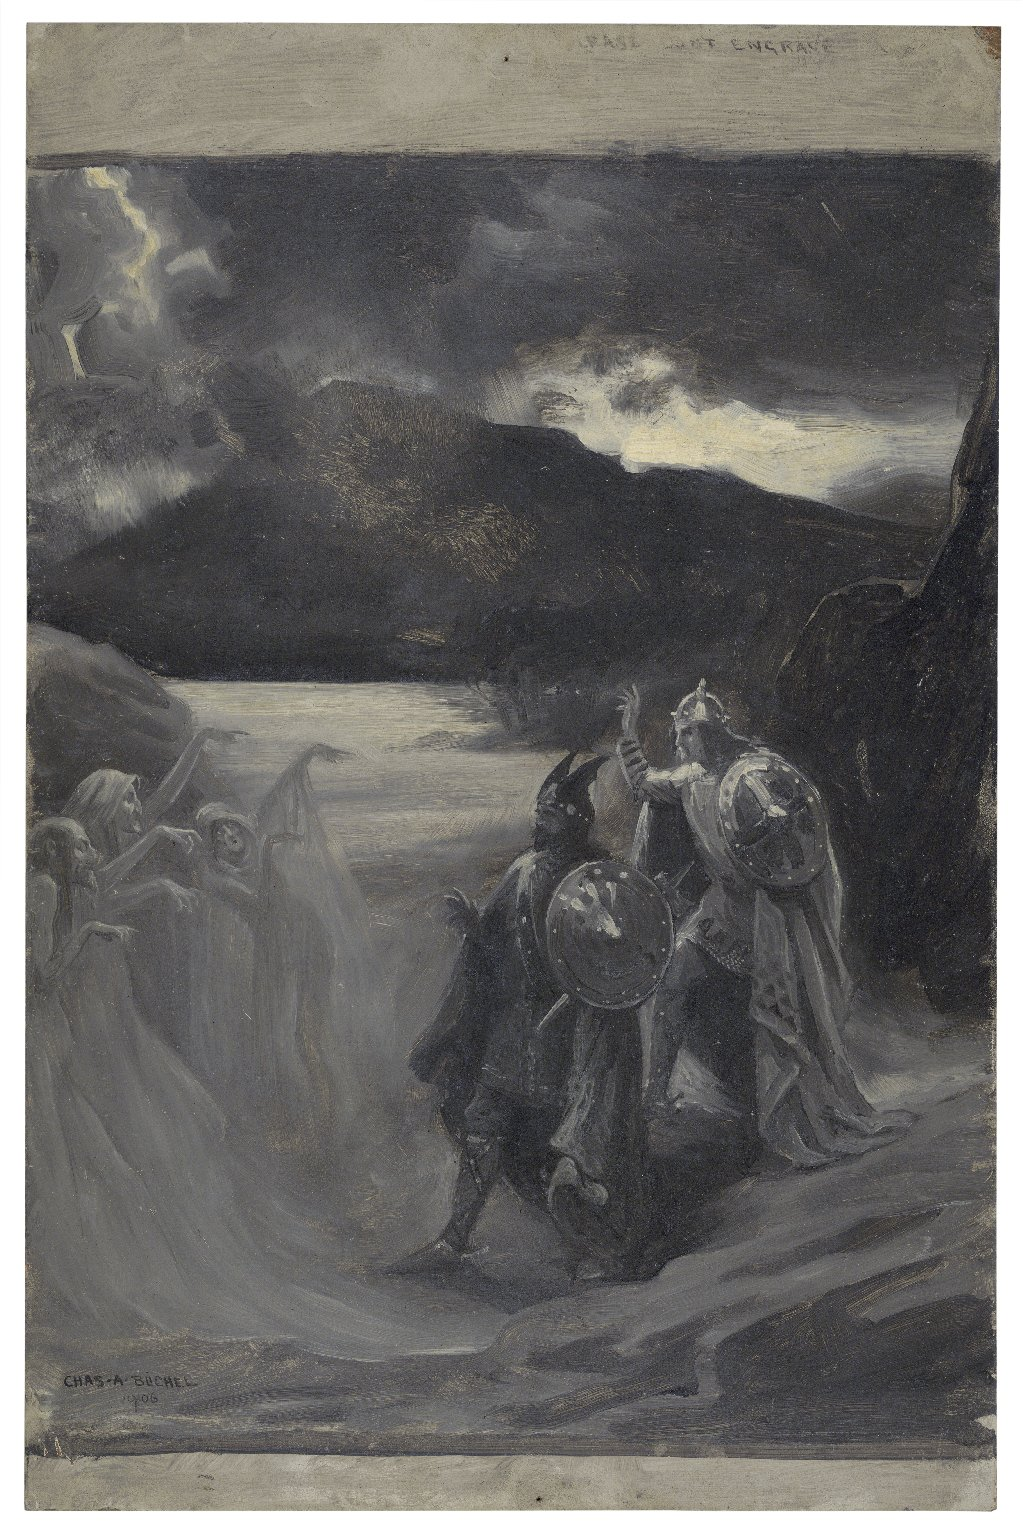 [Macbeth and the three witches] [graphic] / Chas. A. Buchel.